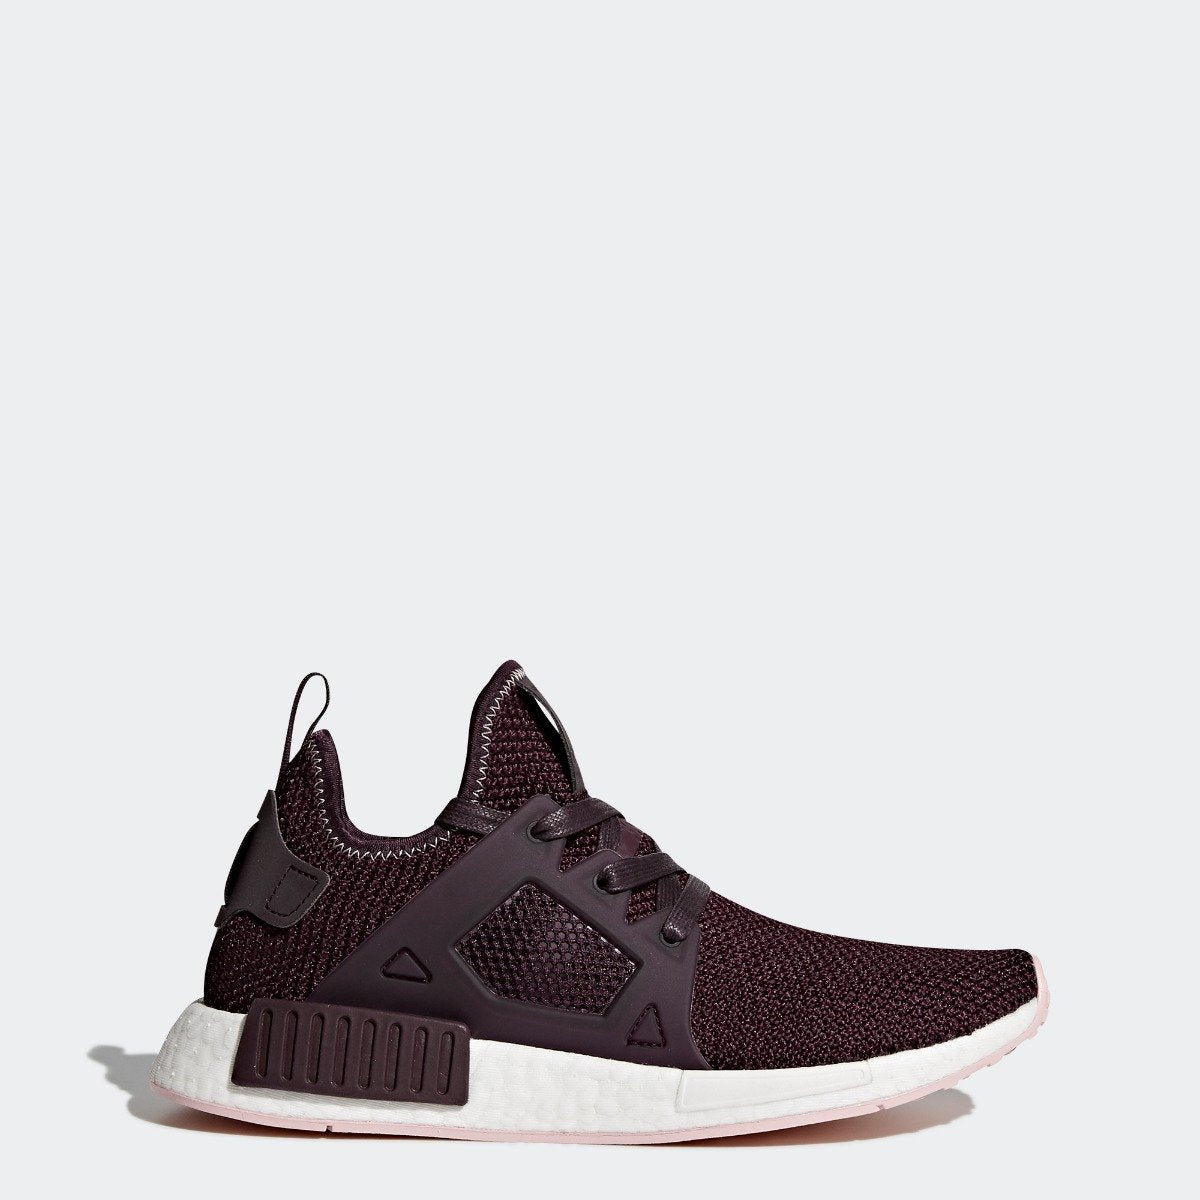 pretty nice fd324 7d098 Women s adidas Originals NMD XR1 Shoes Dark Burgundy and Vapour Pink